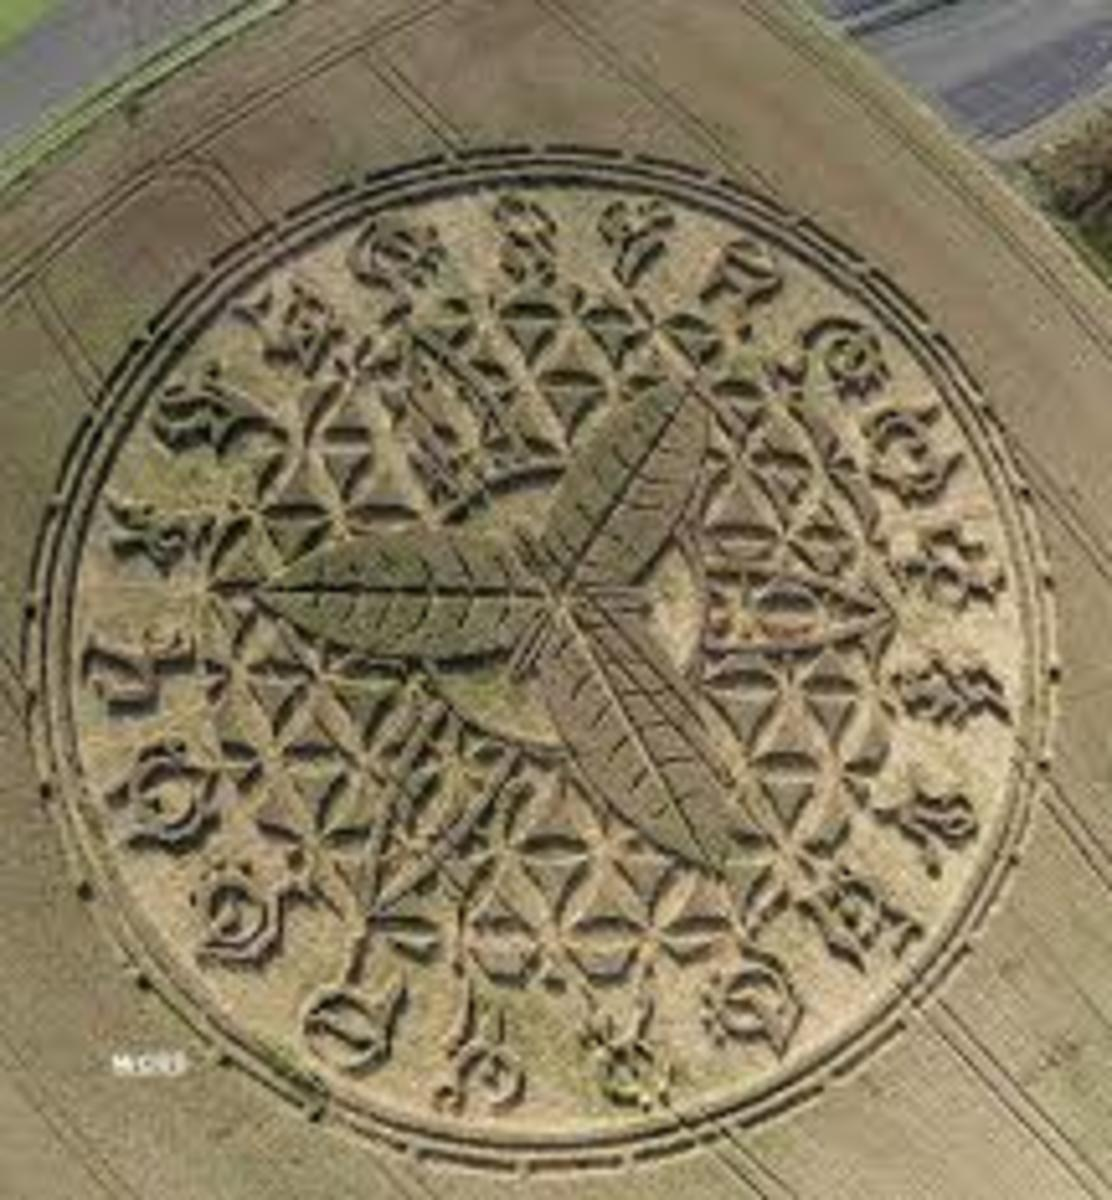 Here is Crop Circle that clearly depicts a plant in the middle. Could the message be that the energy used to create Crop Circles, also be used to create unlimited food supplies?